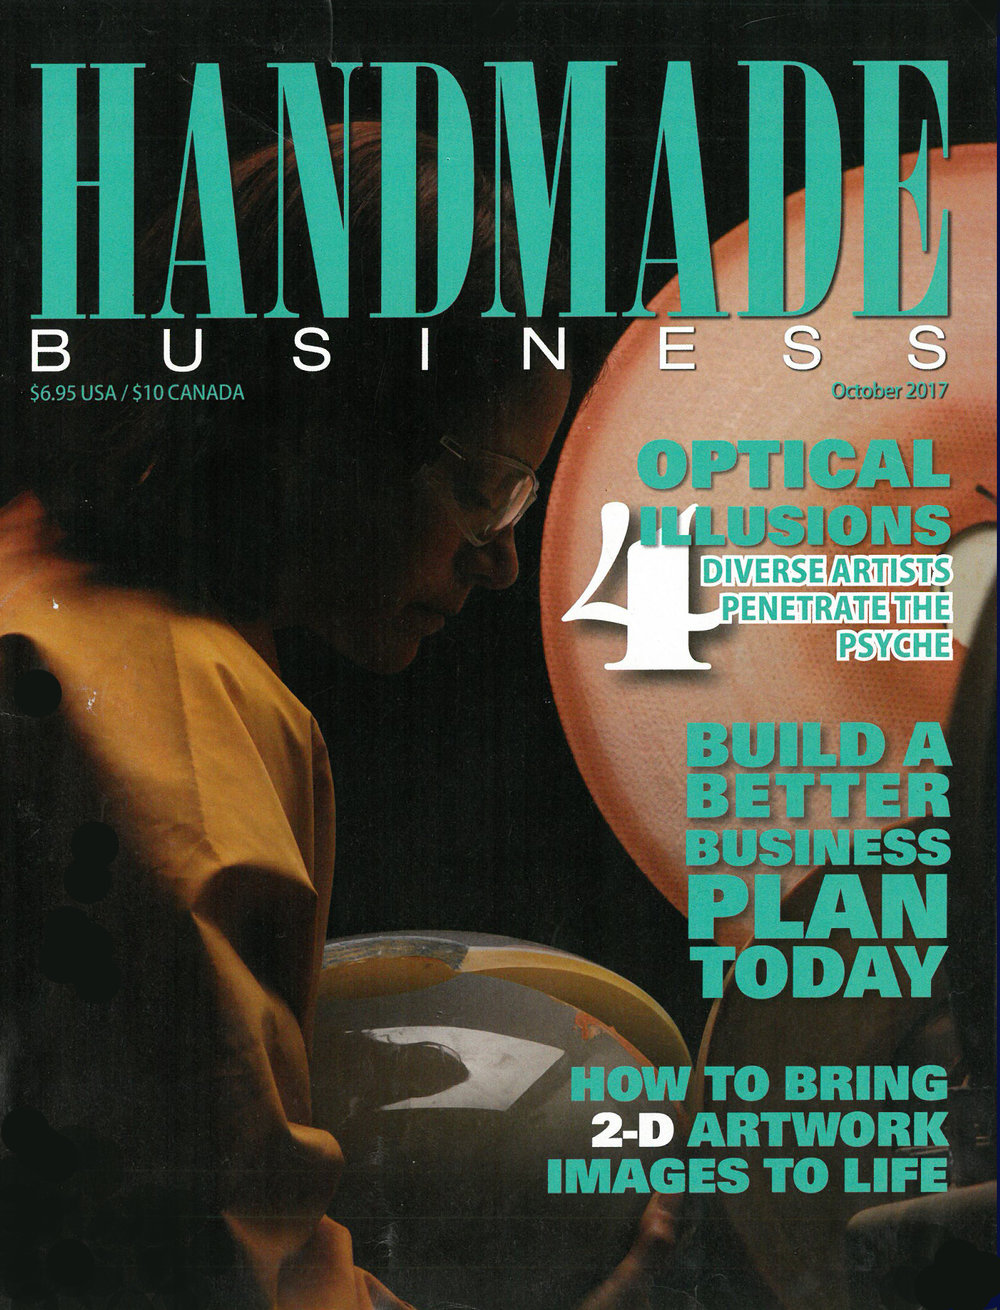 Handmade Business cover.jpg